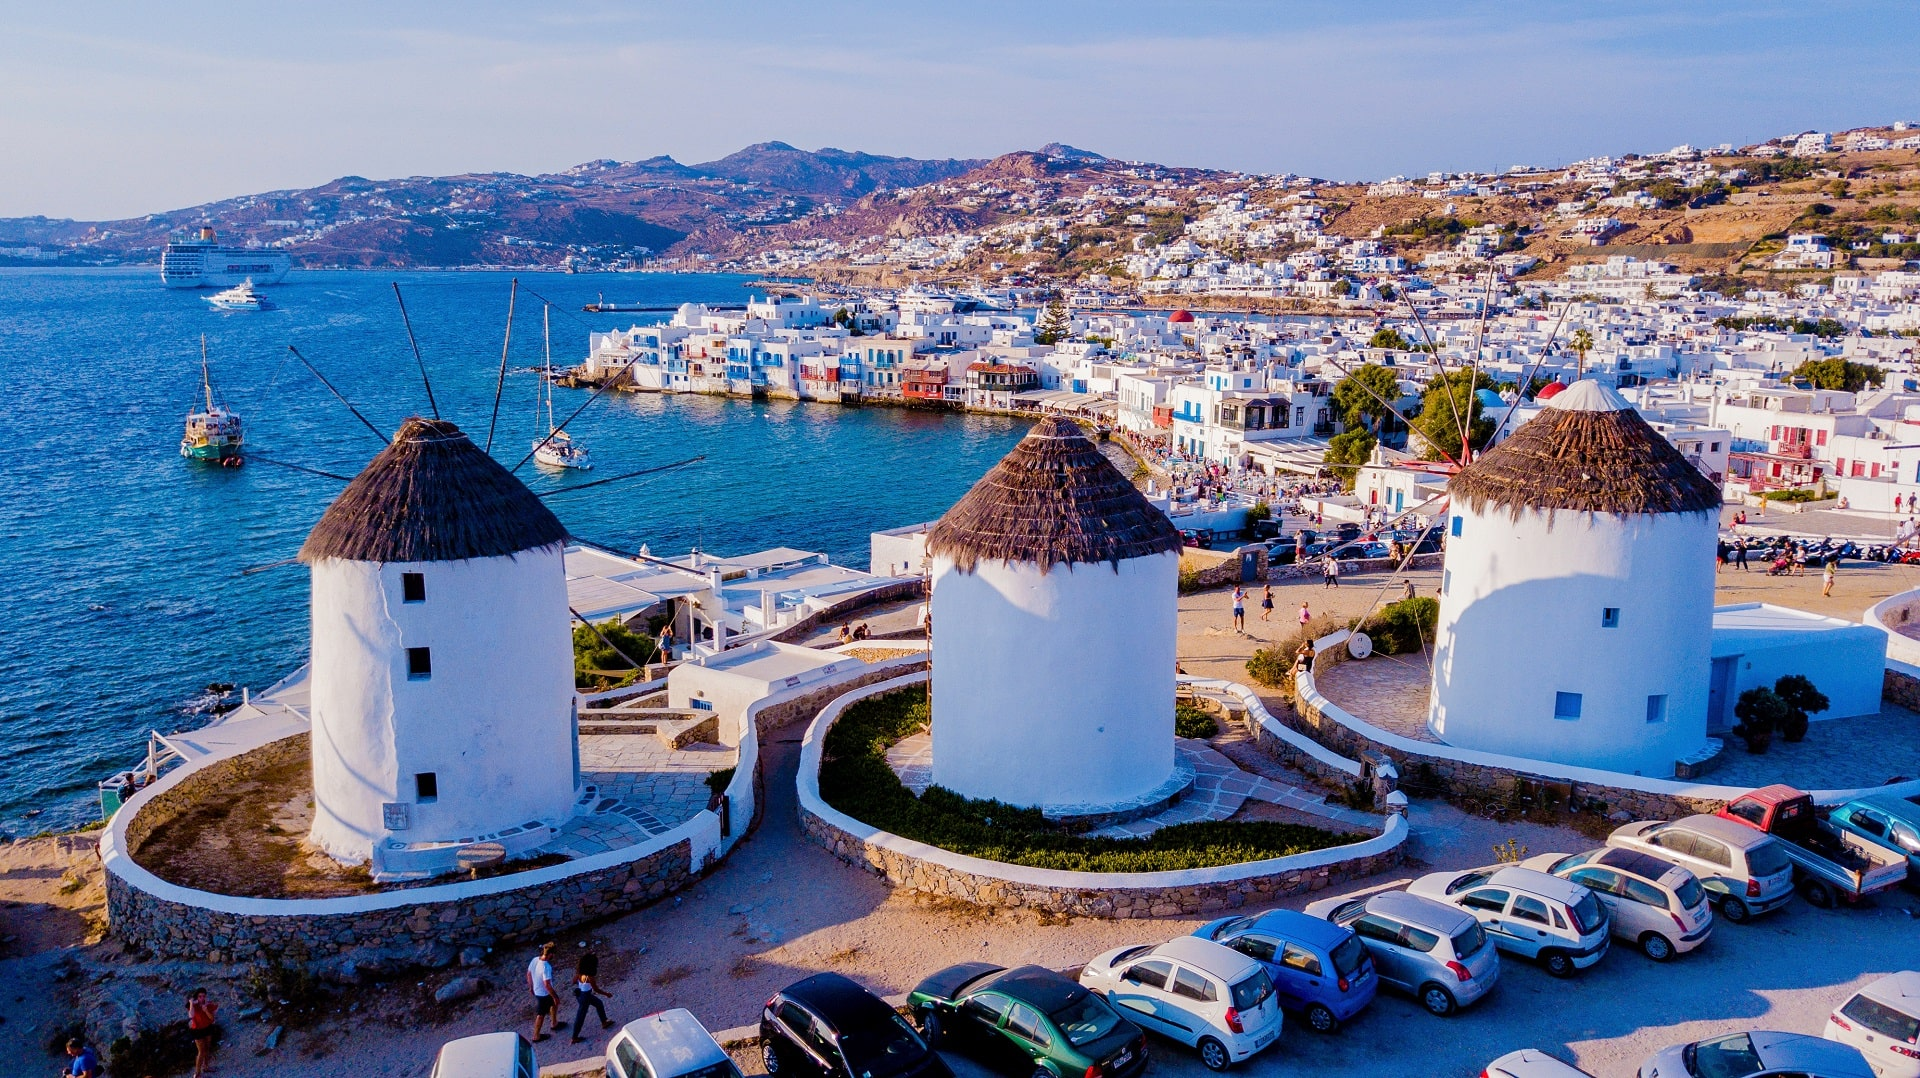 Mykonos Windmills - Greece